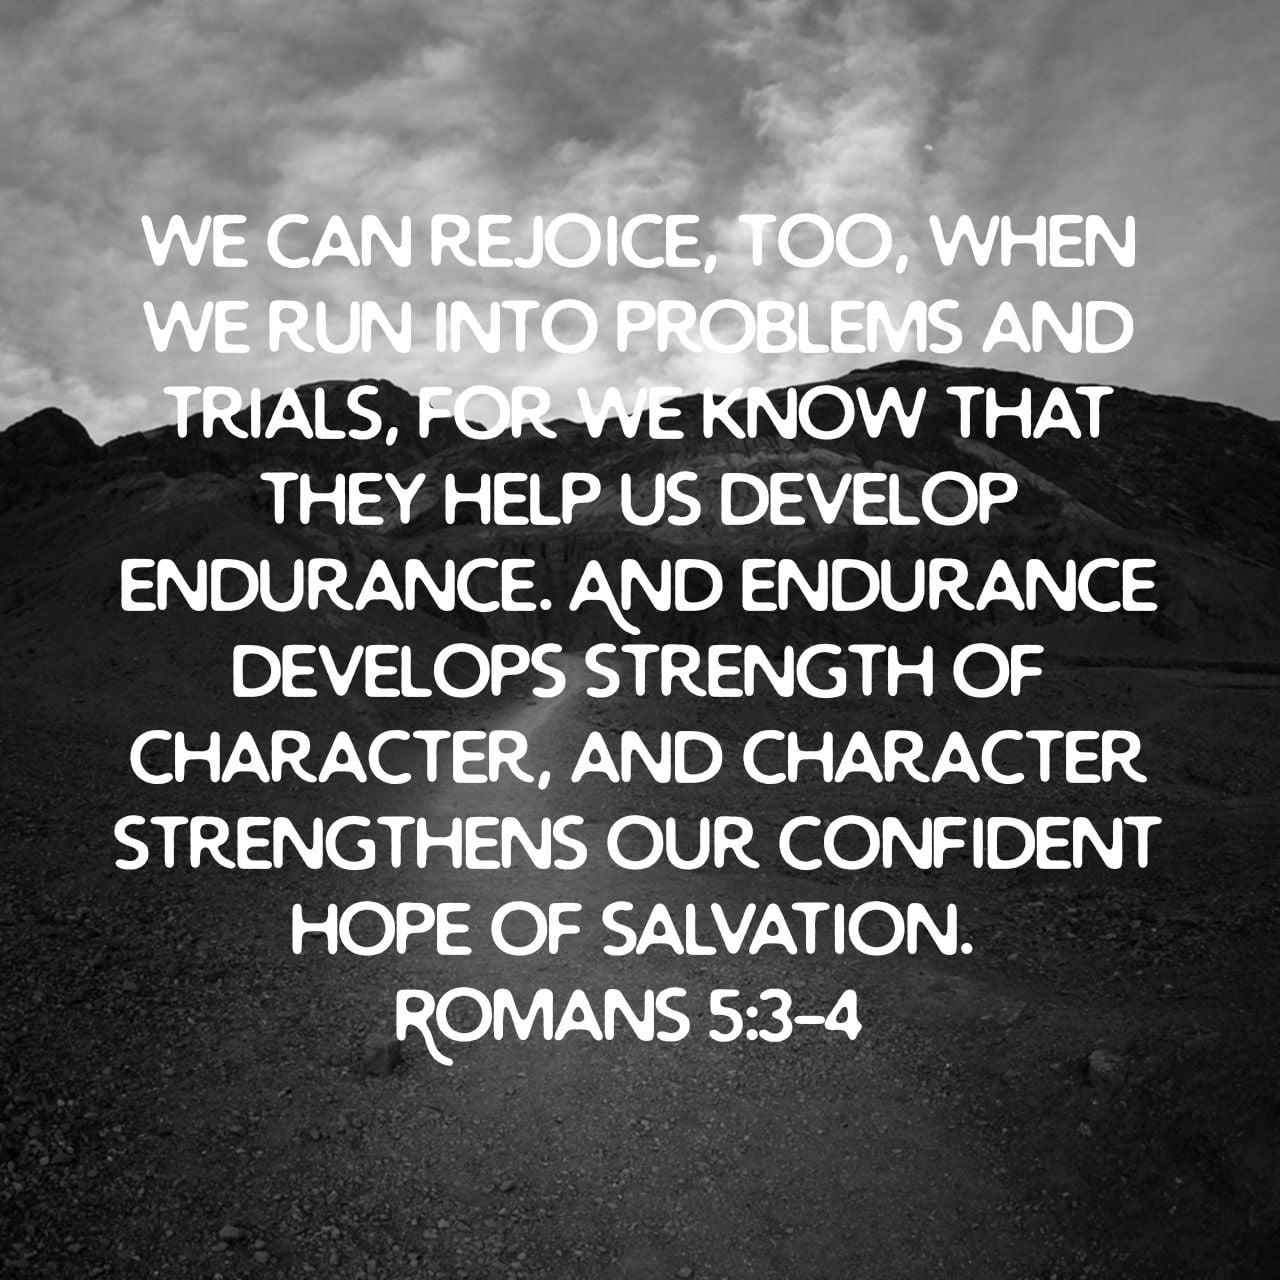 We can rejoice, too, when we run into problems and trials, for we know that they help us develop endurance. And endurance develops strength of character, and character strengthens our confident hope of salvation. - Romans 5:3‭-‬4 NLT